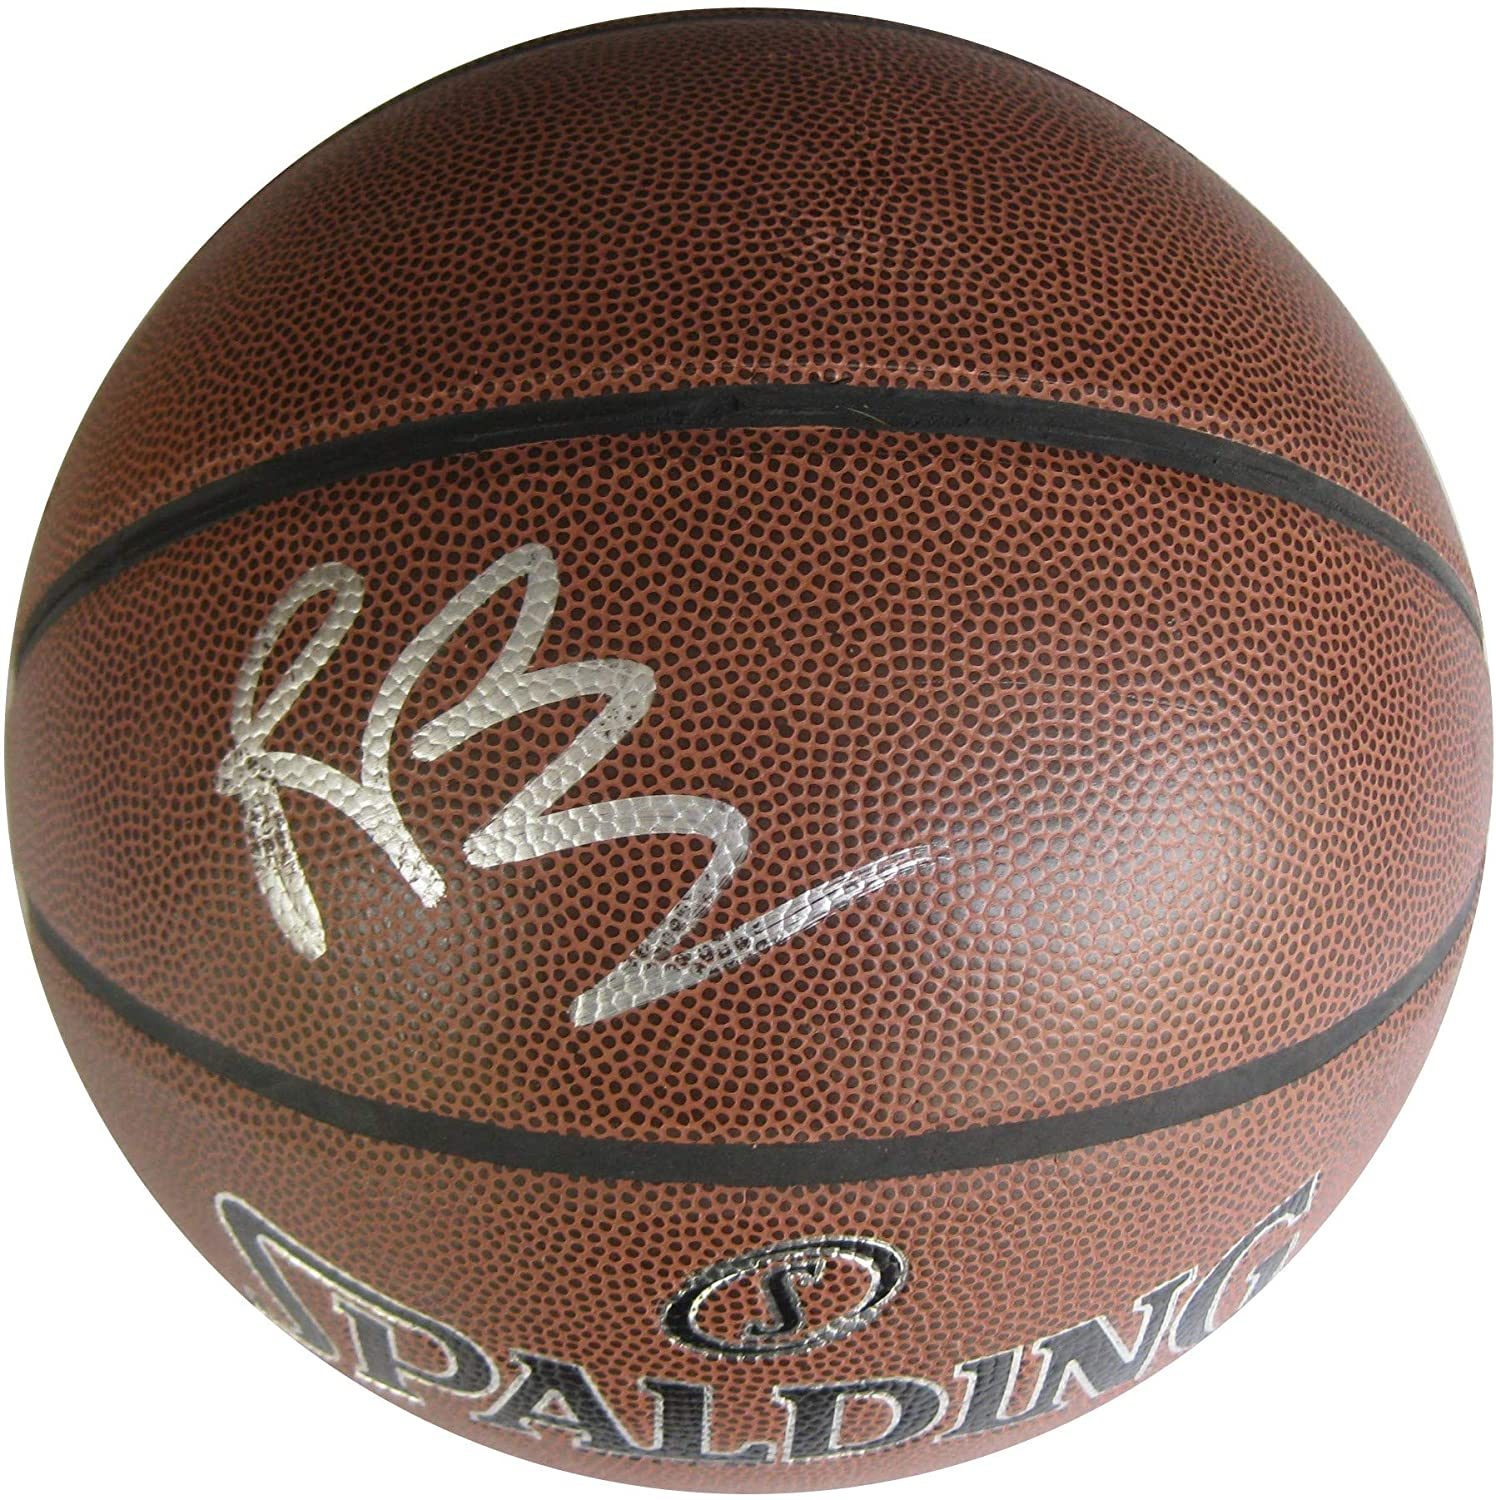 RJ Barrett Duke Blue Devils signed autographed NBA Basketball, COA with the Proof Photo will be included SPALDING